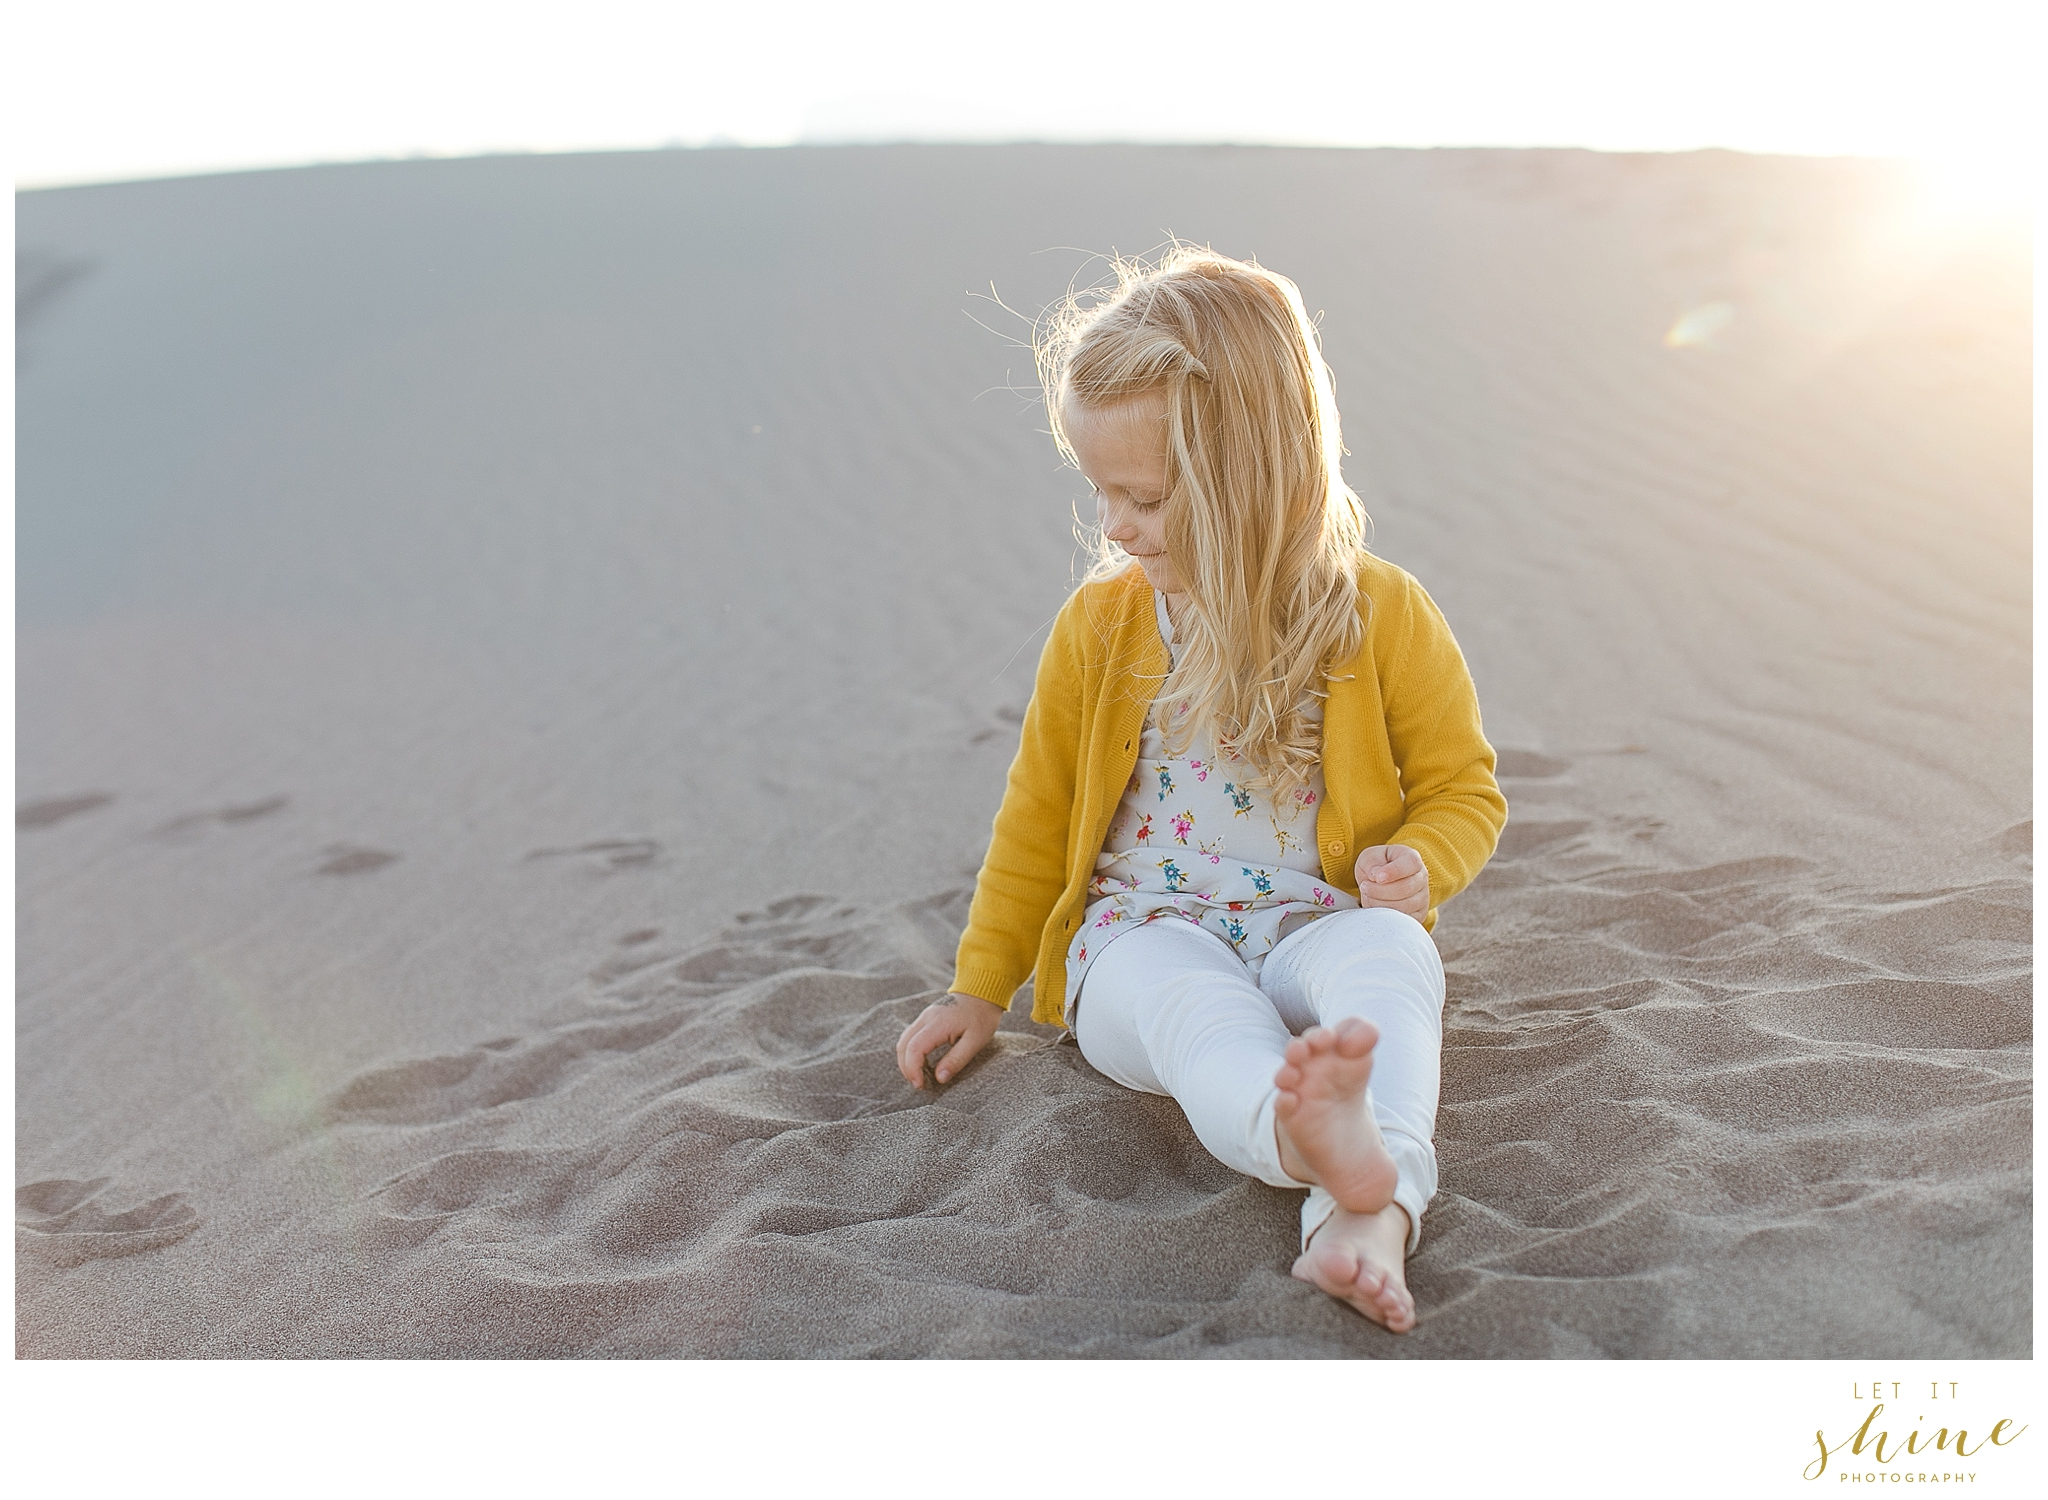 Bruneau Sand Dunes Family Session Let it shine Photography-5946.jpg